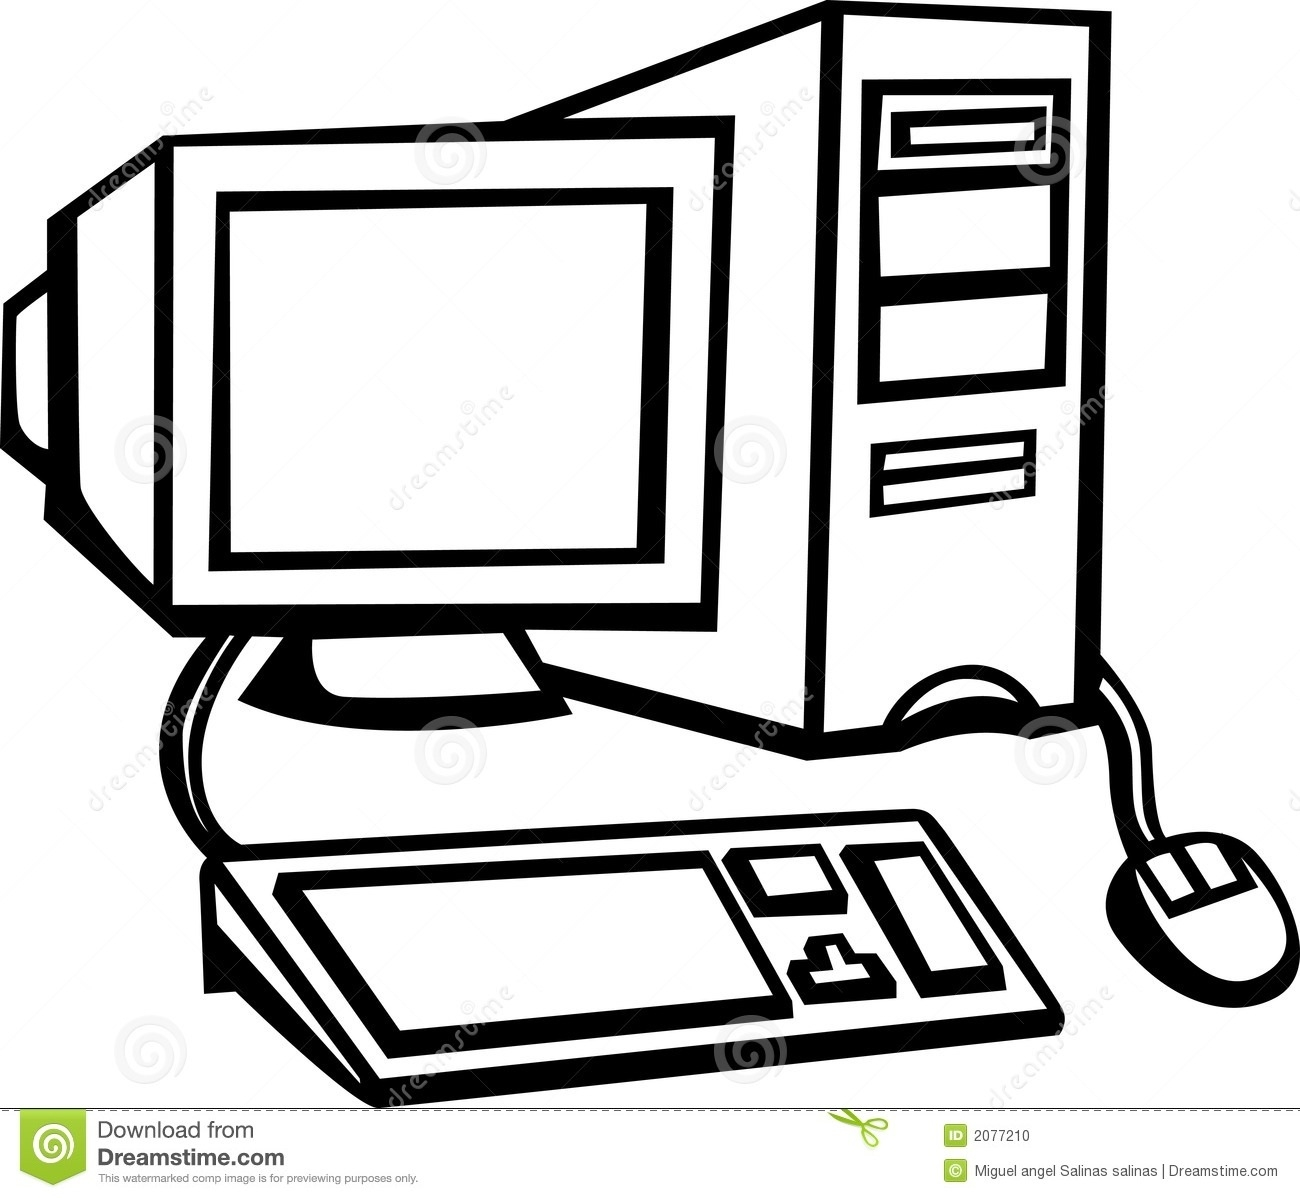 Computer clipart black and white Awesome Desktop puter.